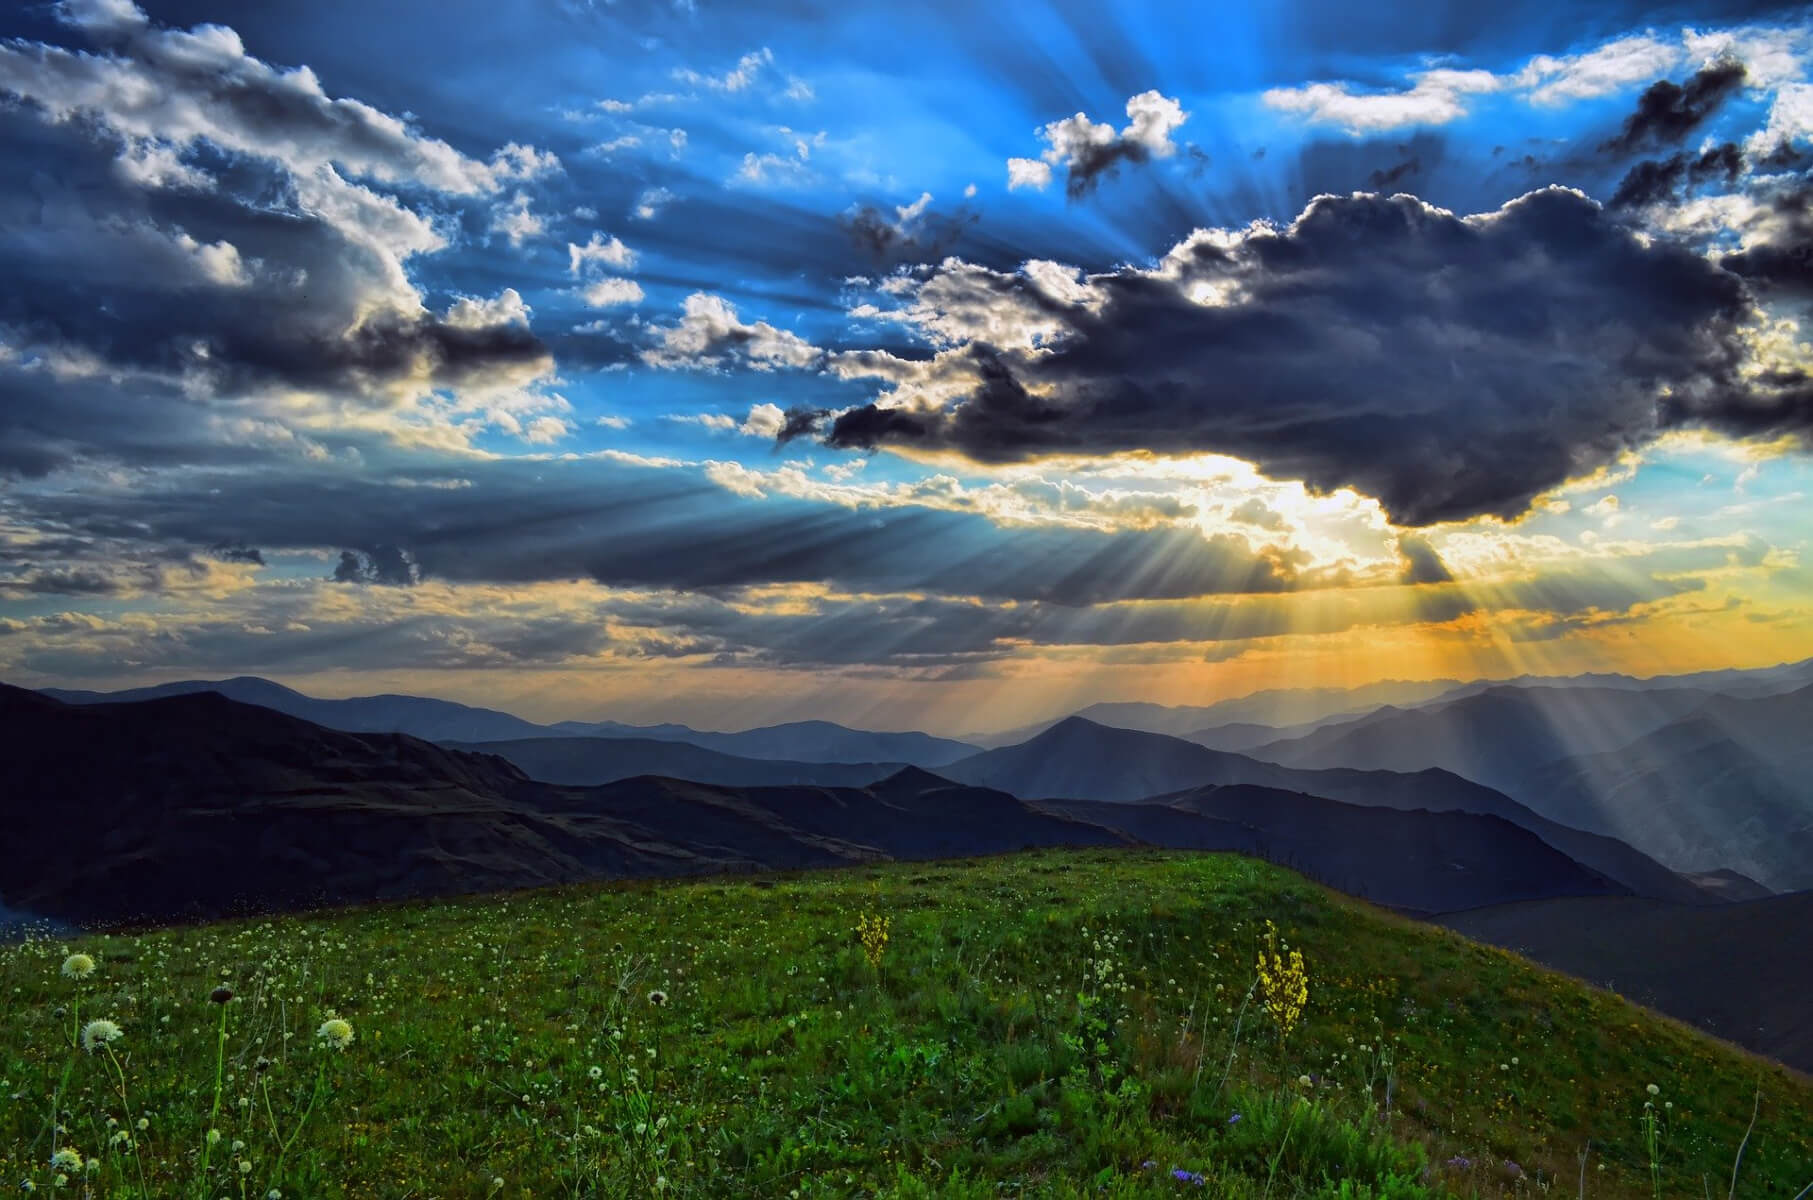 sun beams shining down through clouds on lush landscape of grass with mountains in the back